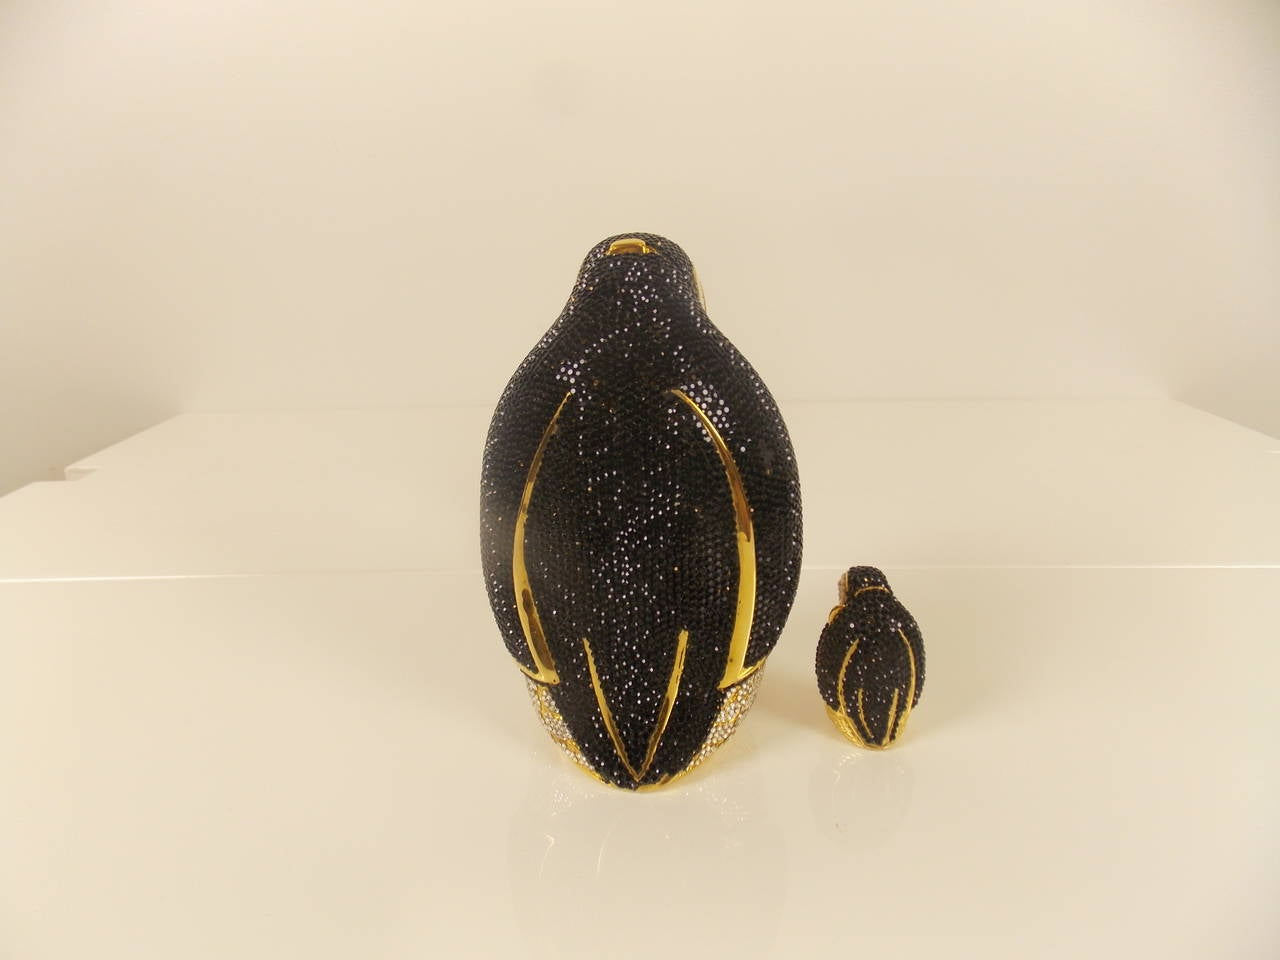 Penguin clutch with gold chain strap, small penguin box inside and comb.